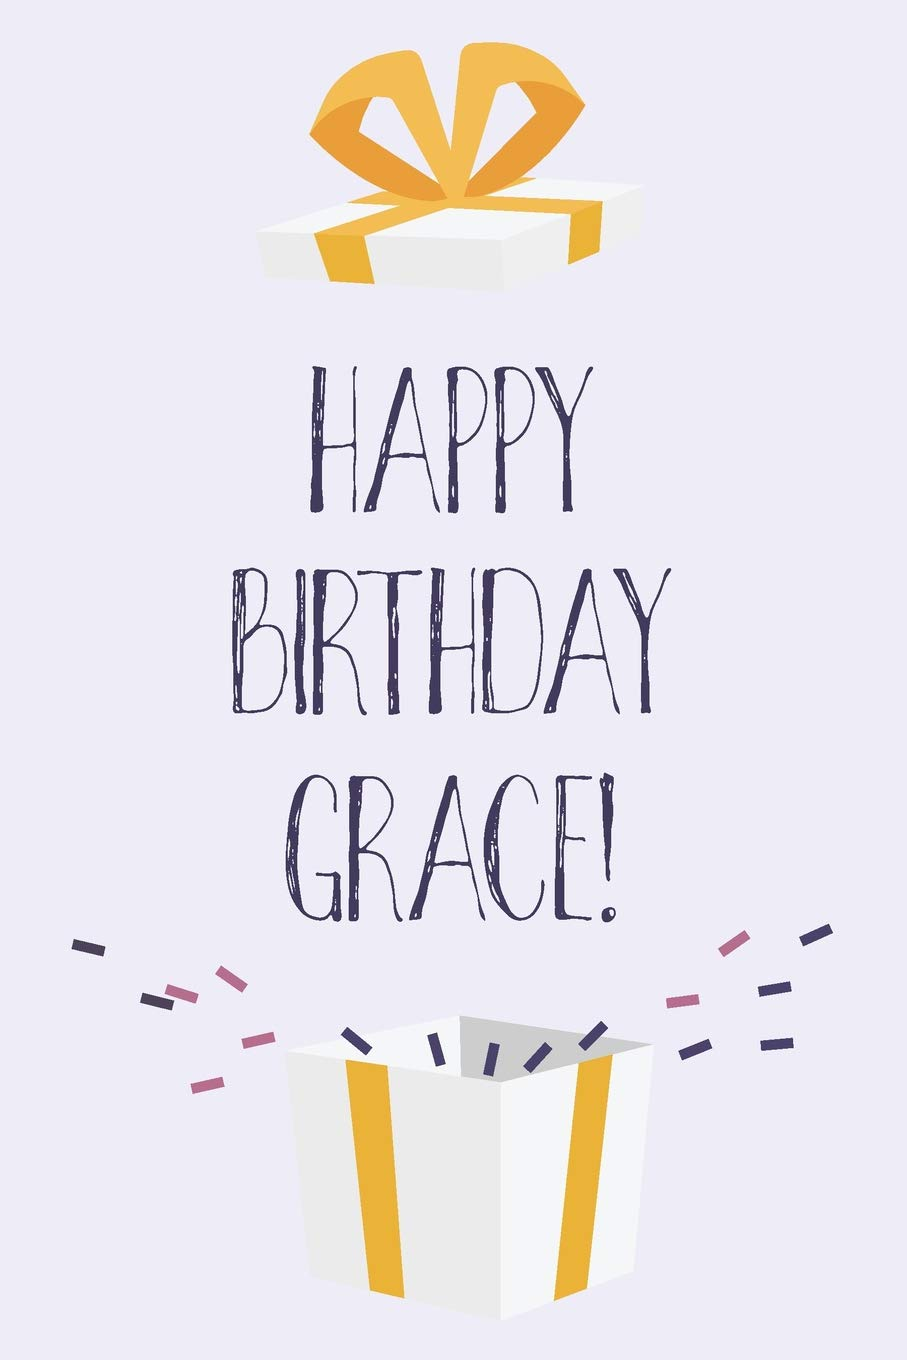 Happy Birthday Grace Cute Personalized First Name Grace Birthday Card Journal Notebook Diary Greetings Appreciation Gift For Girls 6 X 9 110 Blank Lined Pages Publishing Thrice 9781073396177 Amazon Com Books